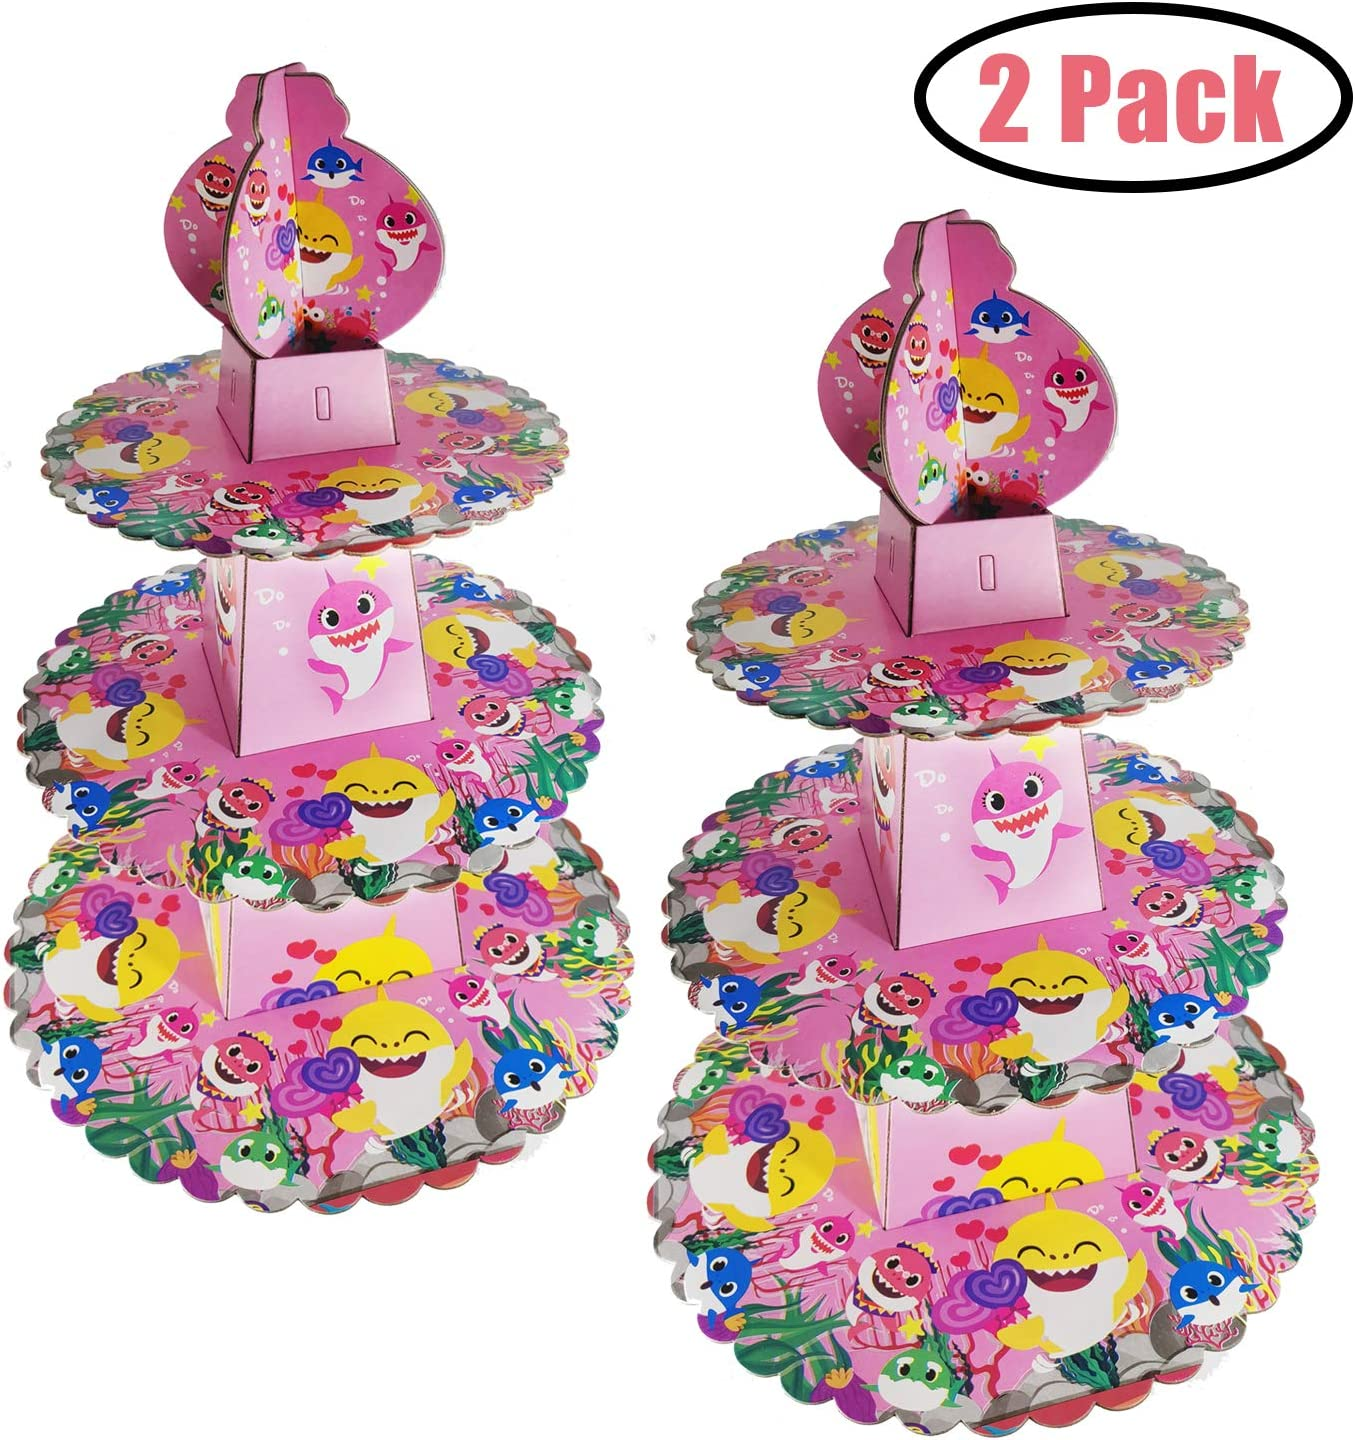 2 PCS Baby Shark Cake Stand Party Supplies, 3 Tier Baby Shark Cardboard Cupcake Stand, Dessert Cupcake Holder for Kids Birthday Party, Gender Reveal Party, Baby Shower, Shark Themed Party(Pink)